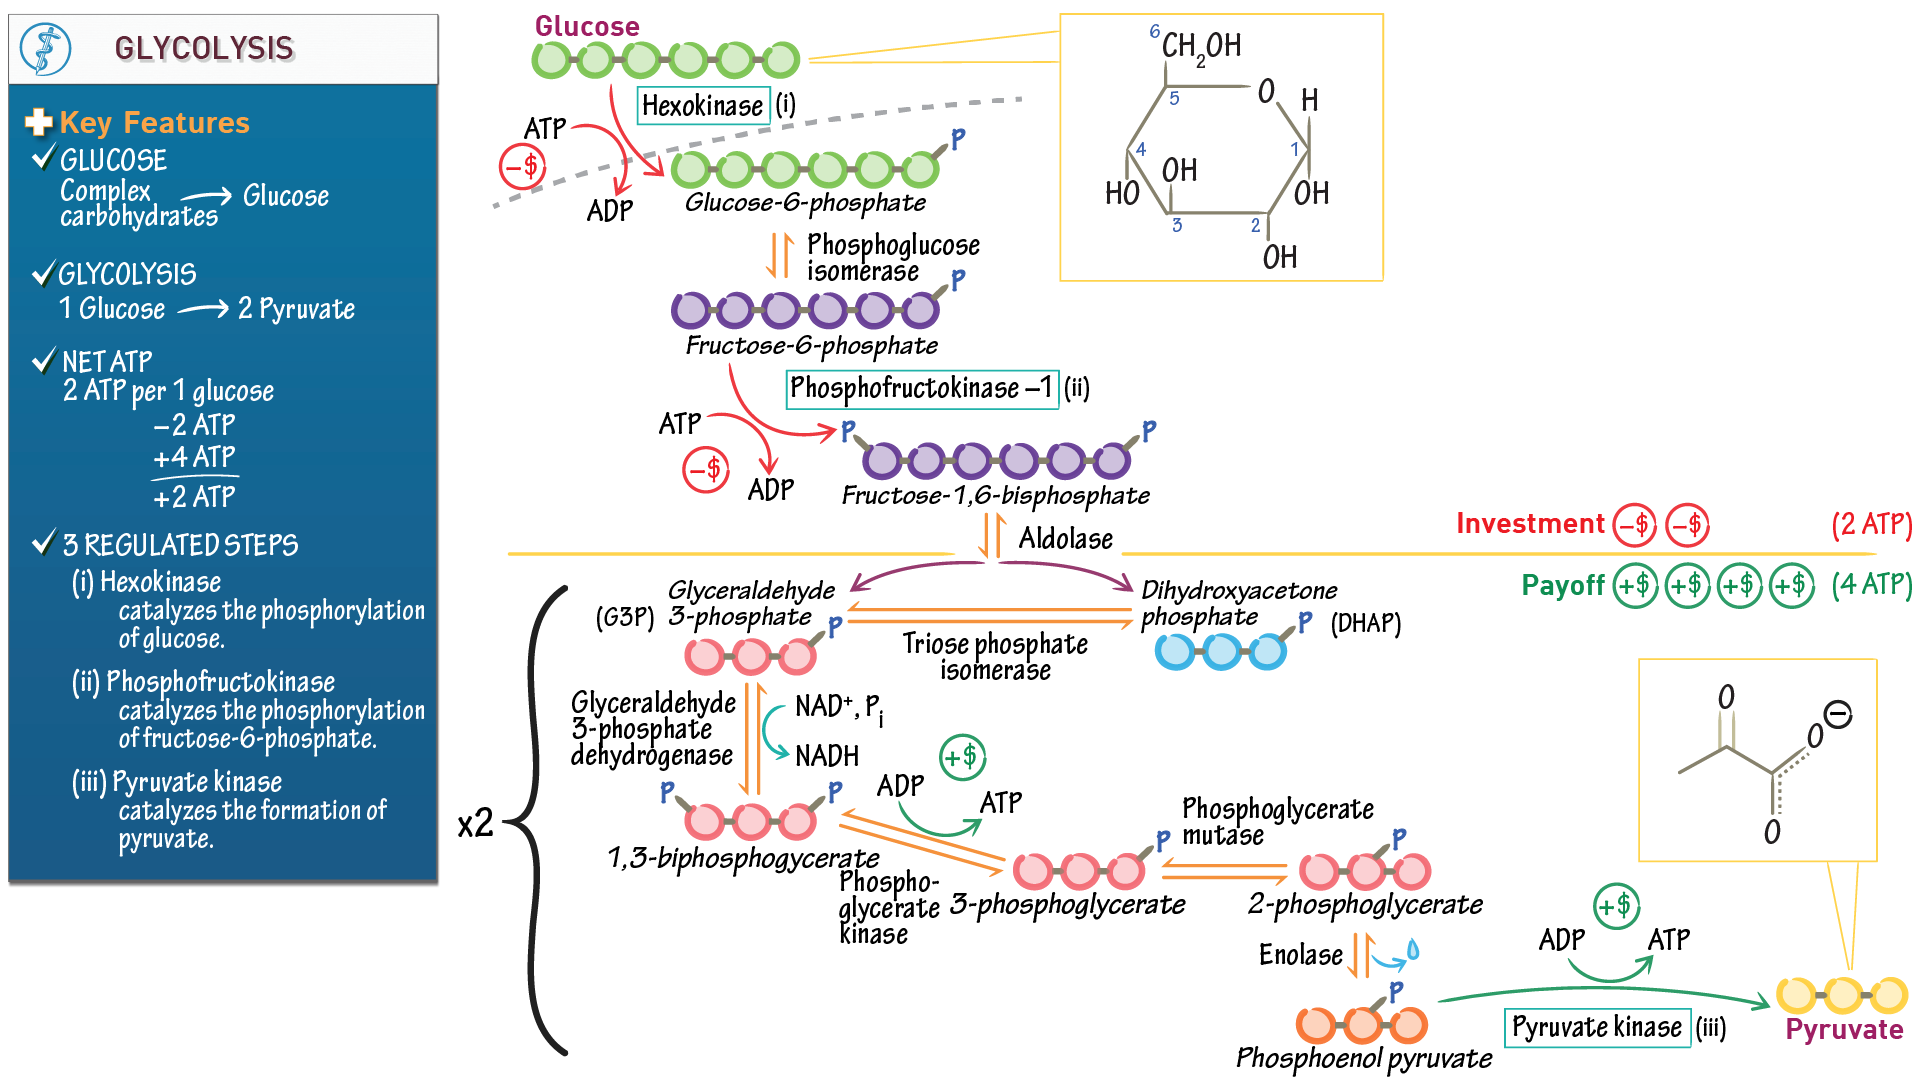 Biochemistry fundamentals glycolysis draw it to know it pooptronica Images